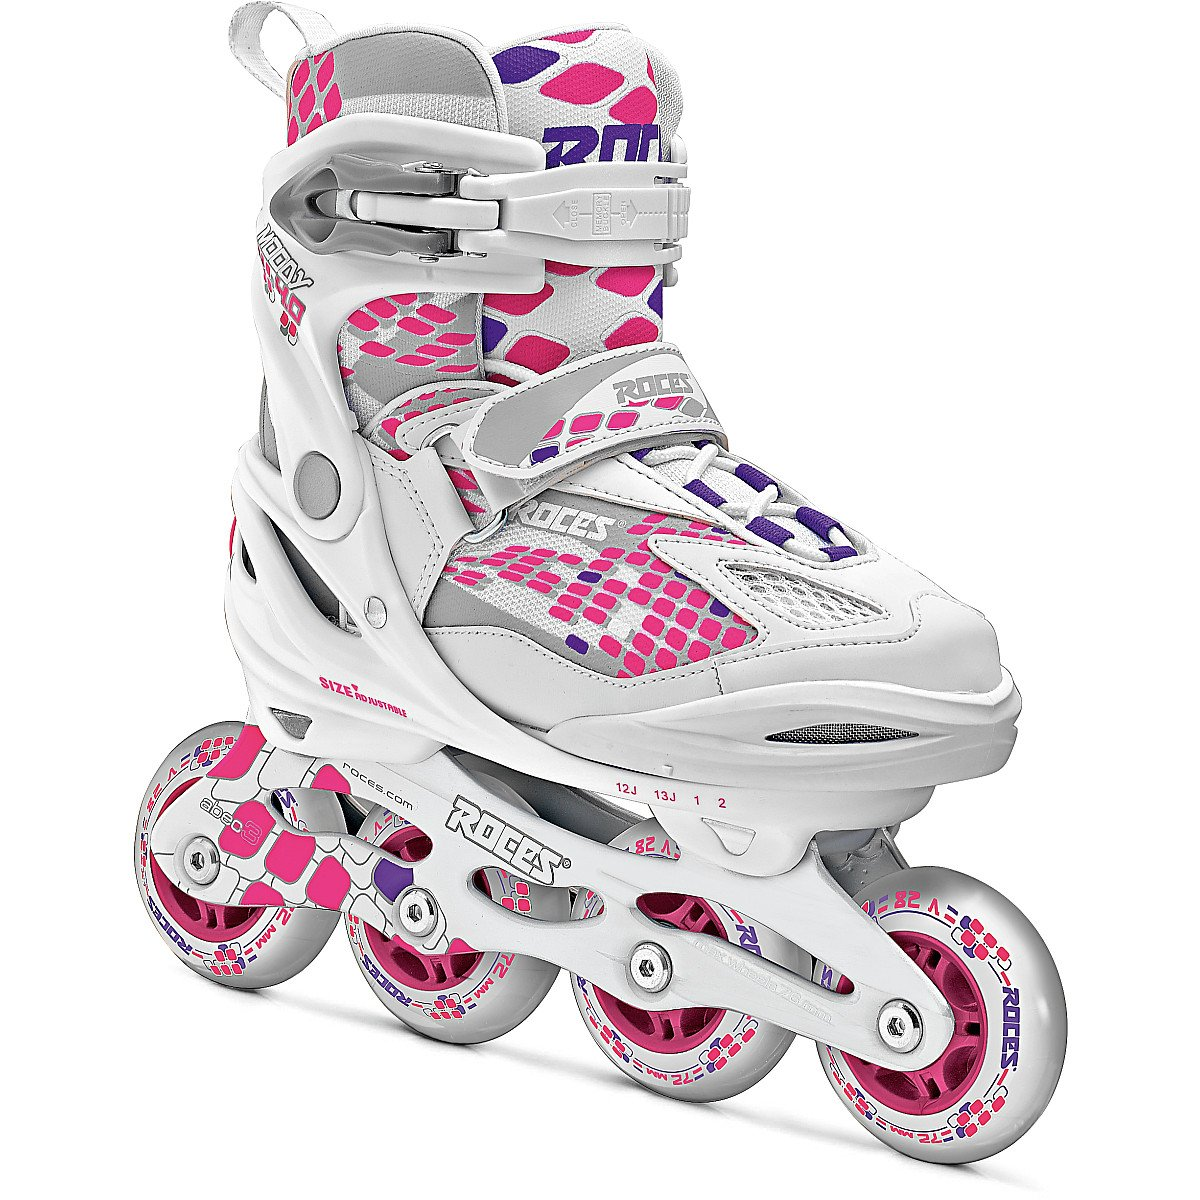 Roces 400793 Women's Model Moody 4.0 Adjustable Inline Skate, US 4-7, White/Pink Lightning by Roces